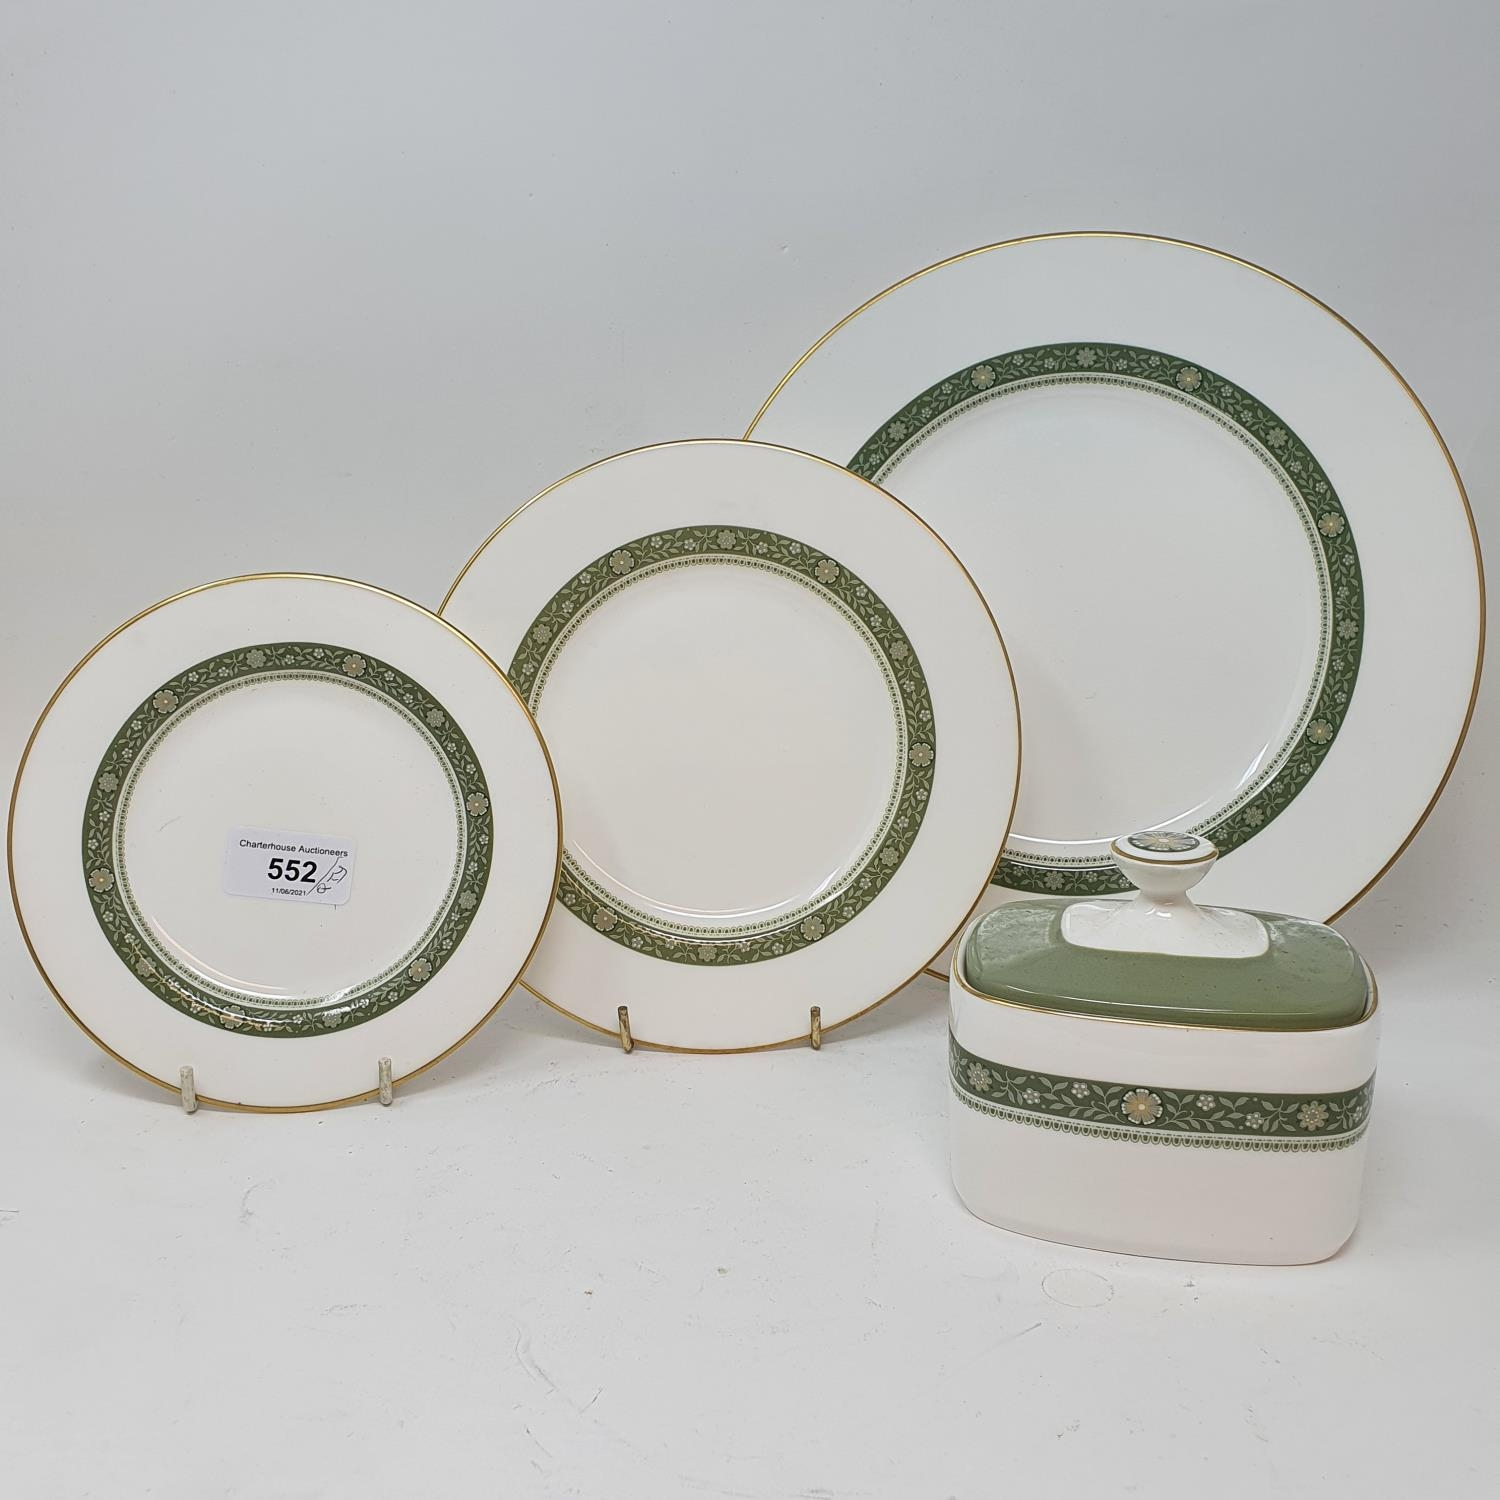 A pair of Staffordshire flat back spaniels, a Royal Doulton part dinner service, other ceramics